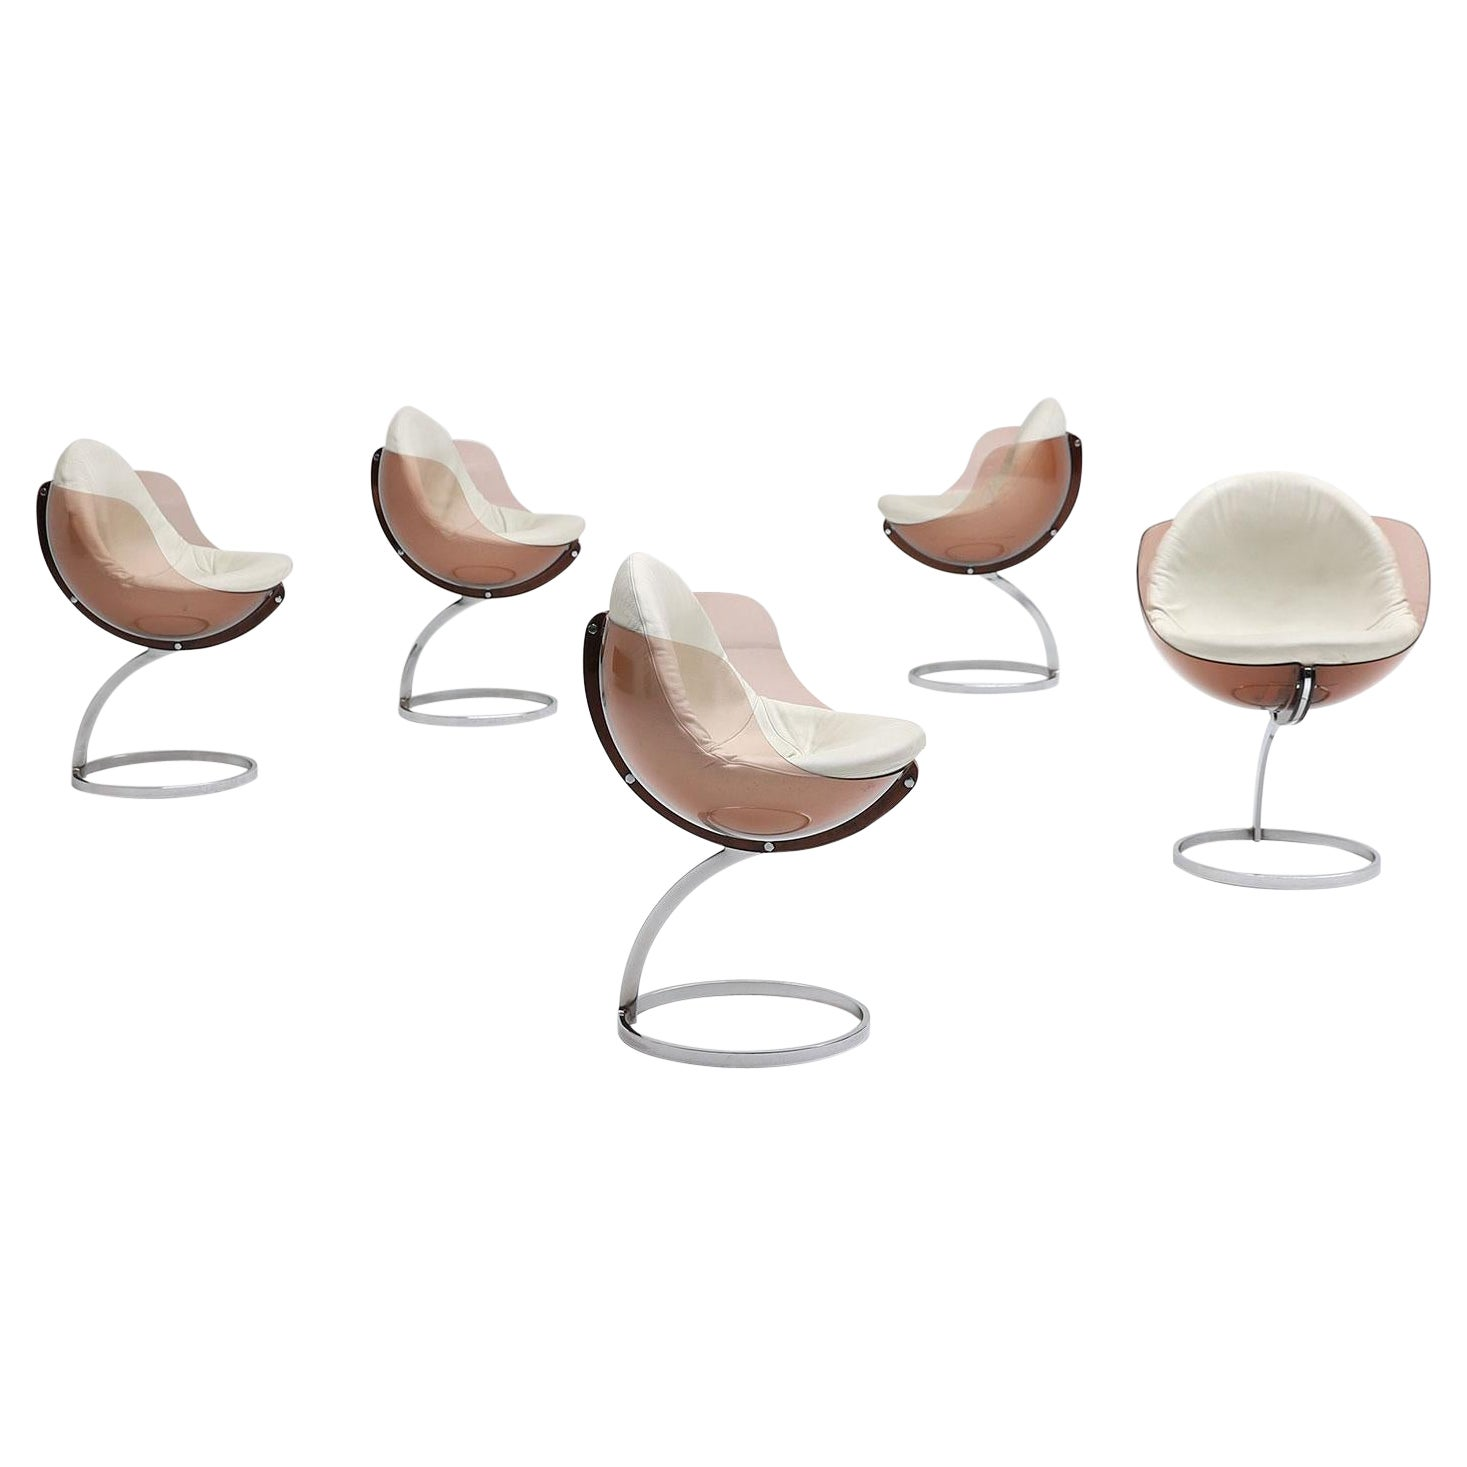 Set of 5 Sphere Chairs Designed by Boris Tabacoff, 1971